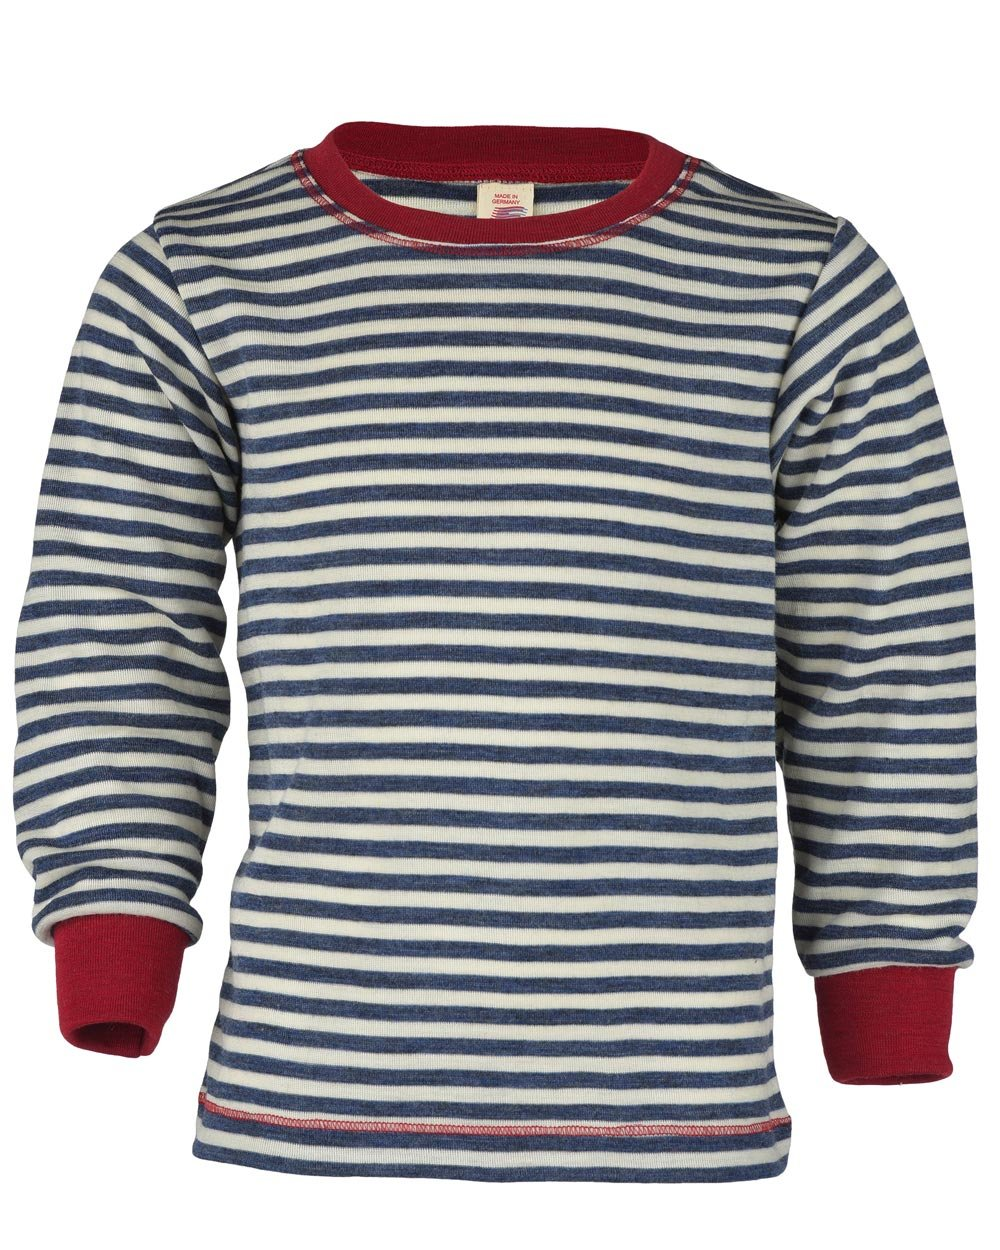 Engel Sweater 100% Merino Wool Children boy Girl Thermal Shirt Pajama Top Organic 42 7610